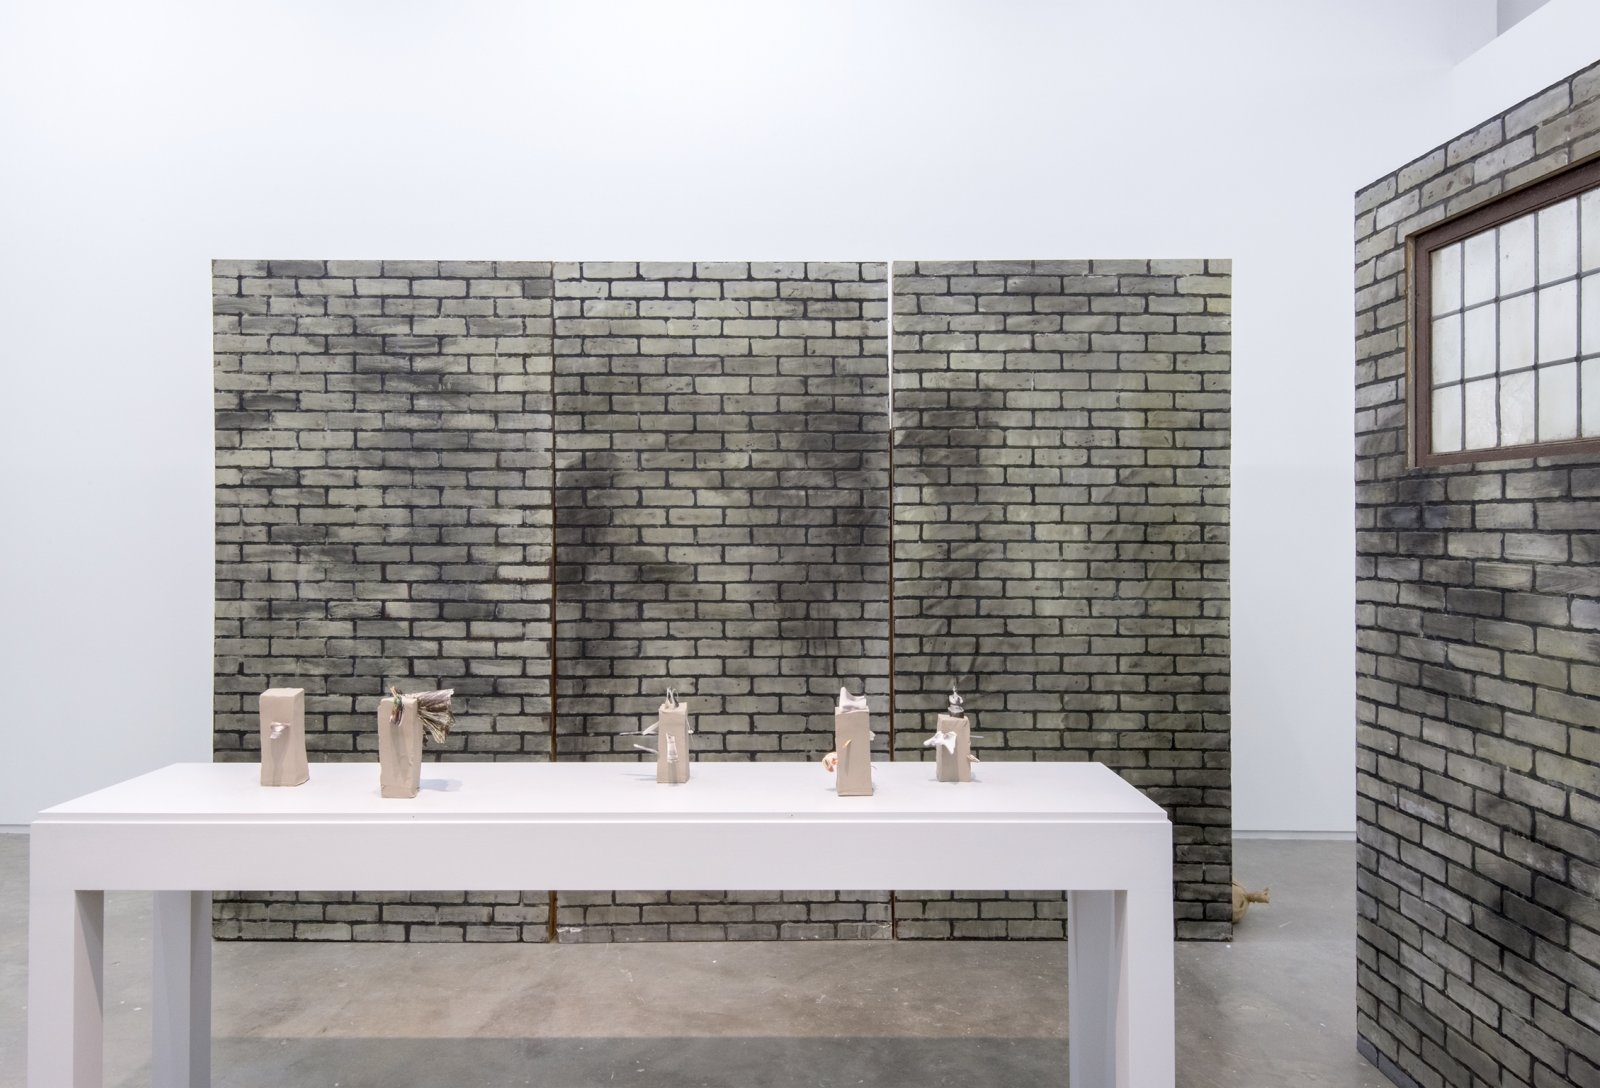 Geoffrey Farmer,ArchaeologywithLooking at a photograph of myself and realizing I had a potato instead of a head (Fountain)(detail), 2014, vitrine with cut-outs mounted on 5 vertical clay slabs, 4 wooden wall brick façades, paint, sandbags, framed cut-outs and ink mounted on paper, dimensions variable